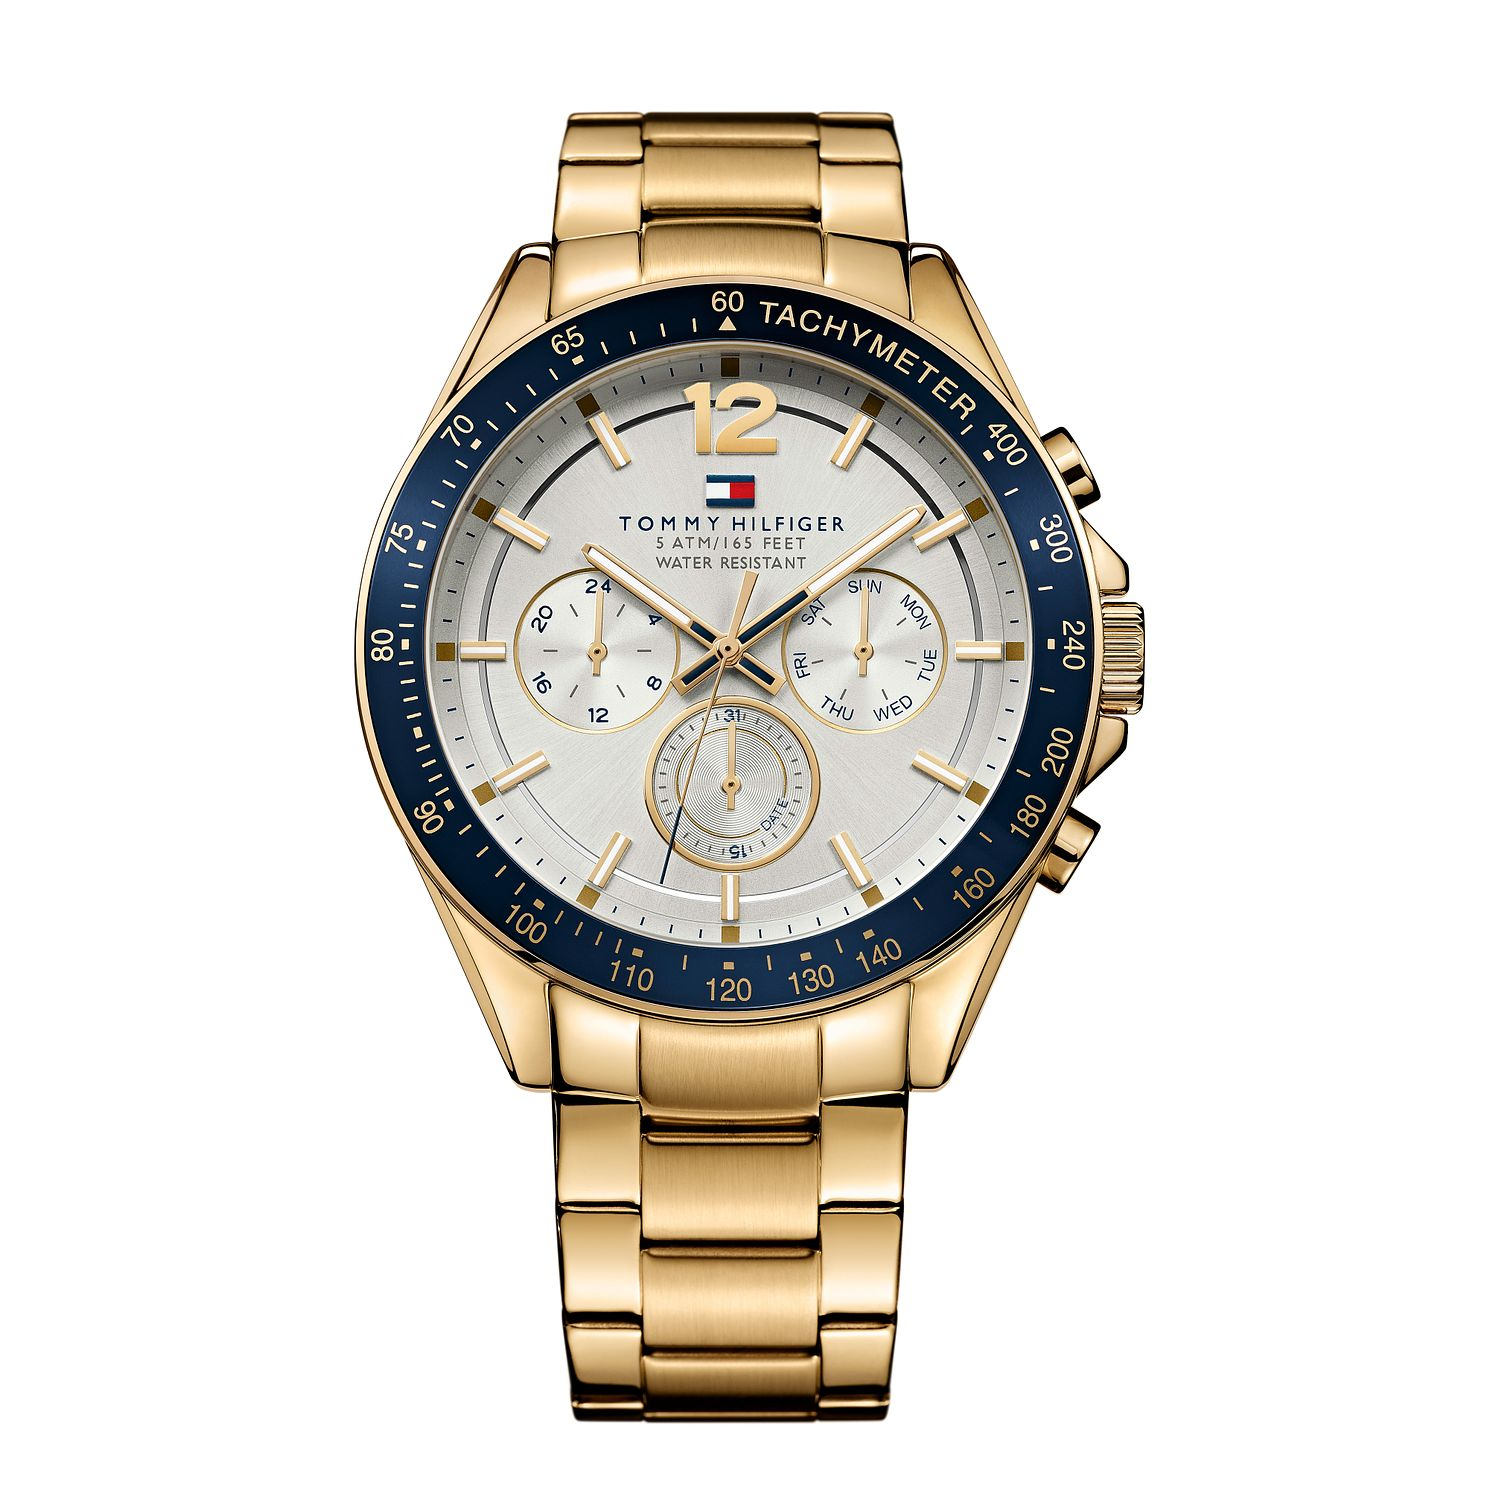 Tommy Hilfiger Men's White Dial Gold-Plated Bracelet Watch - Product number 3837408